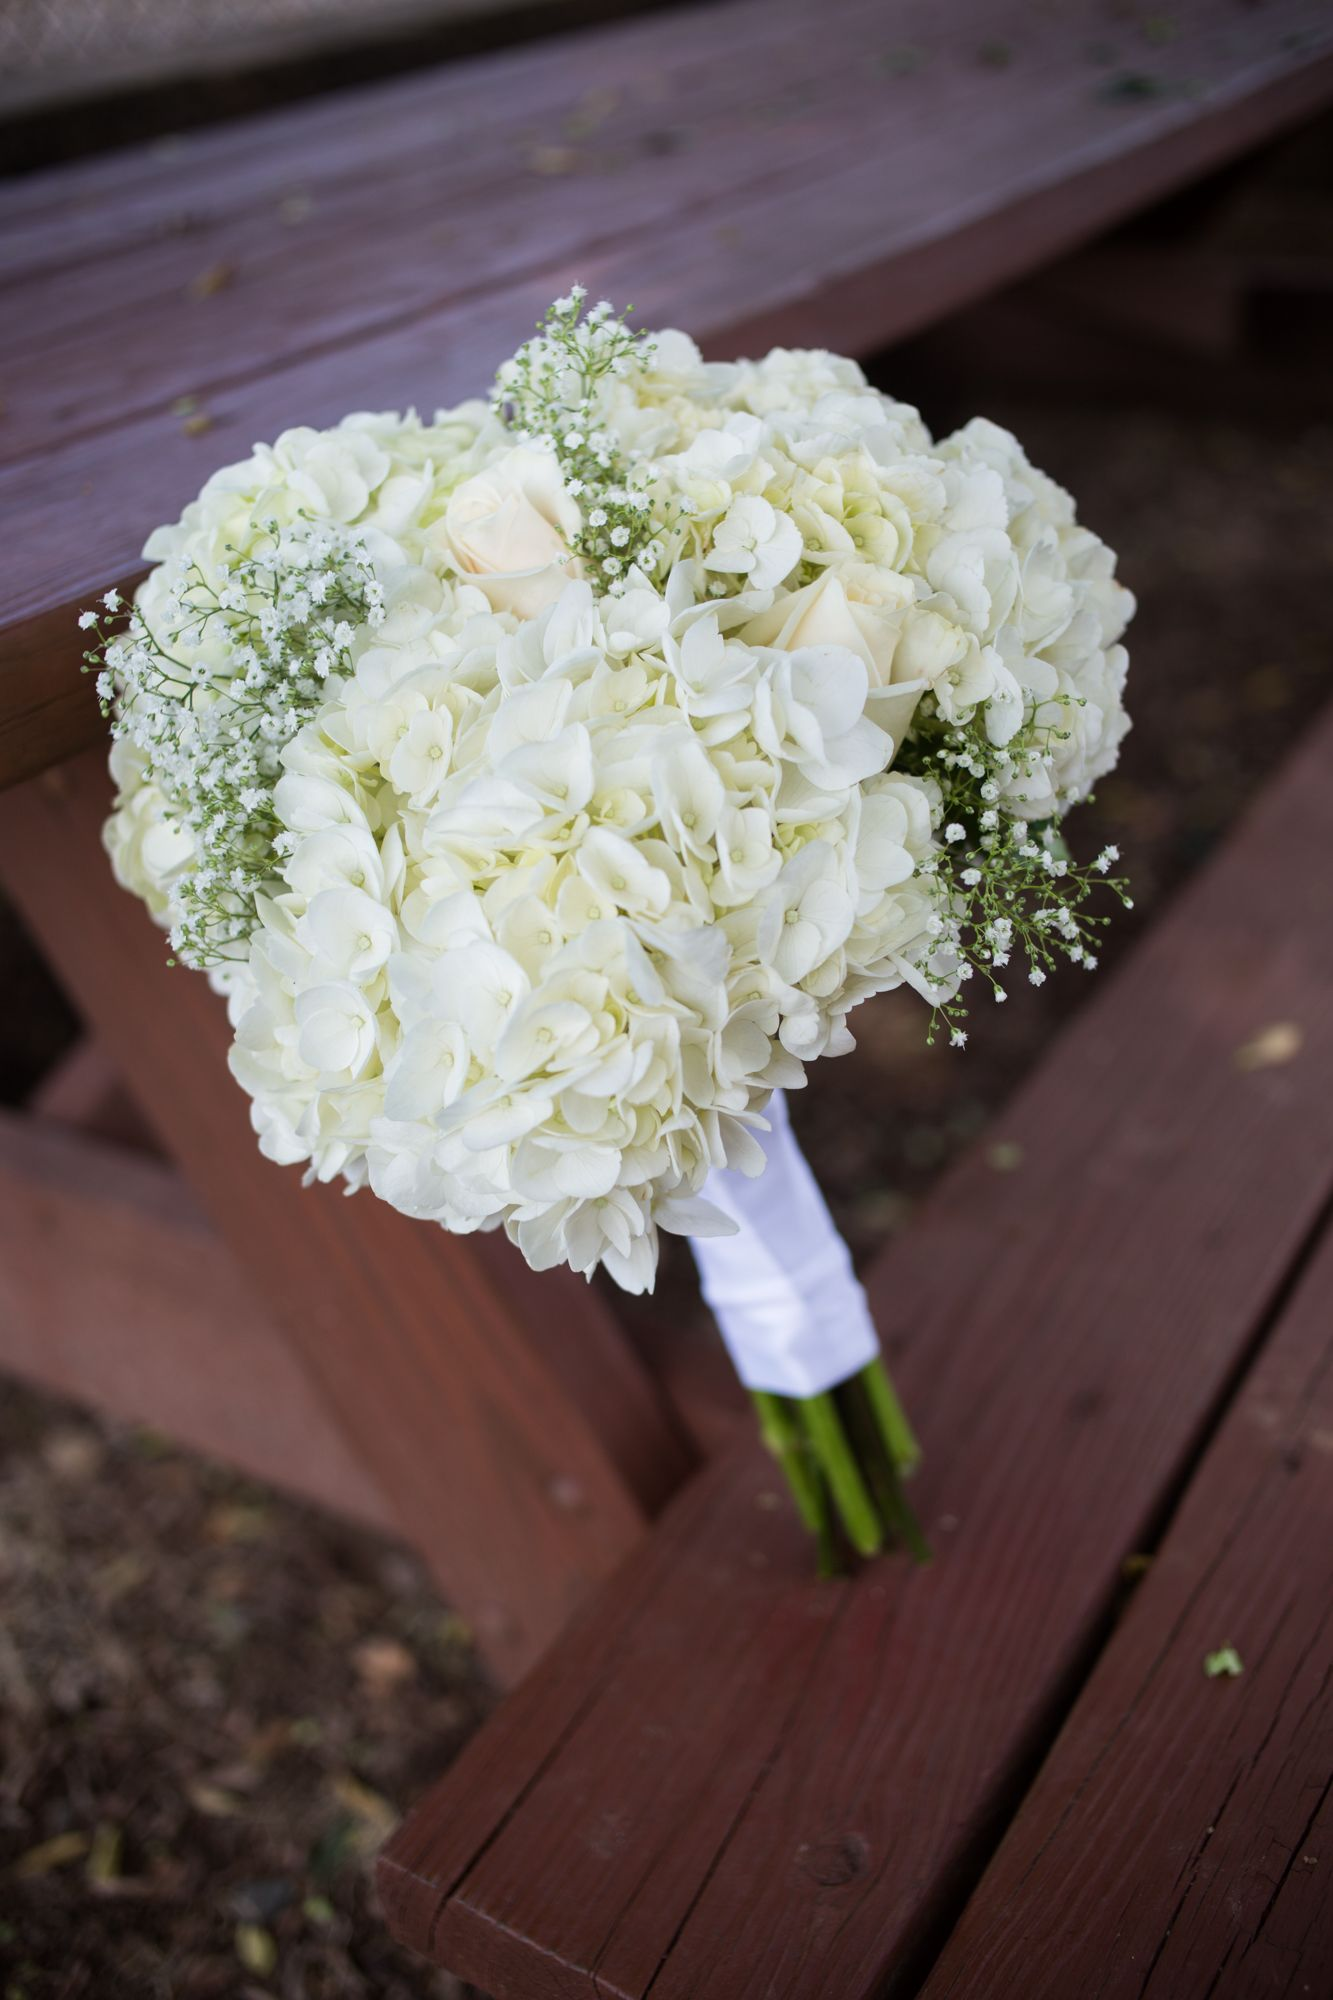 Diy White Hydrangea And Baby S Breath Bouquet Hydrangeas Wedding Wedding Flowers White Roses Hydrangea Bouquet Wedding